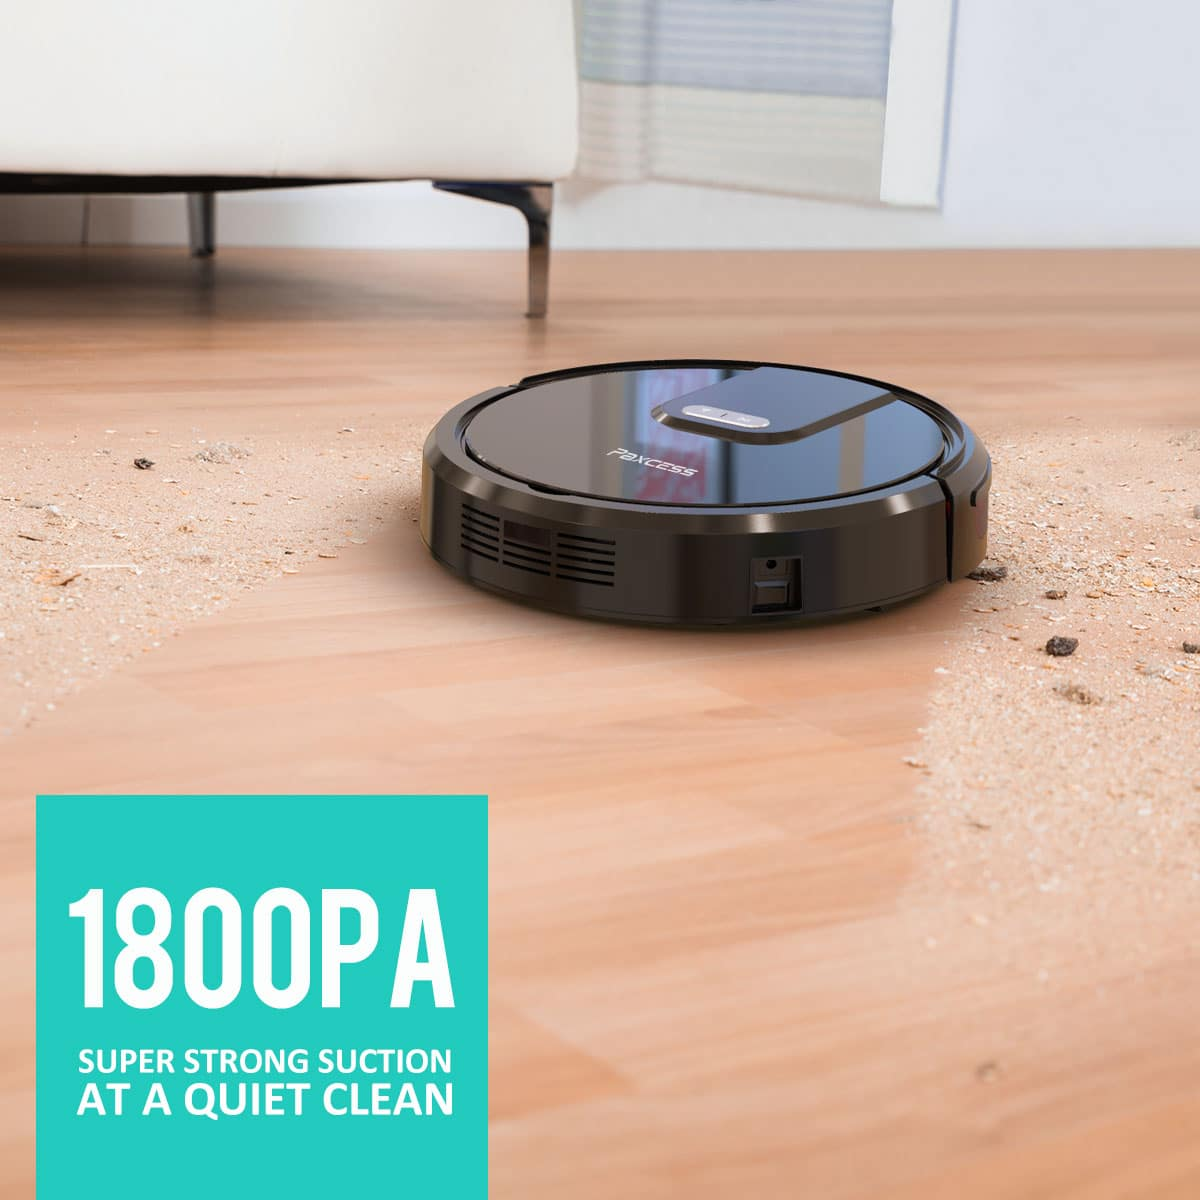 Paxcess MT900 Robotic Vacuum Cleaner $159.99, Free Shipping @ Walmart